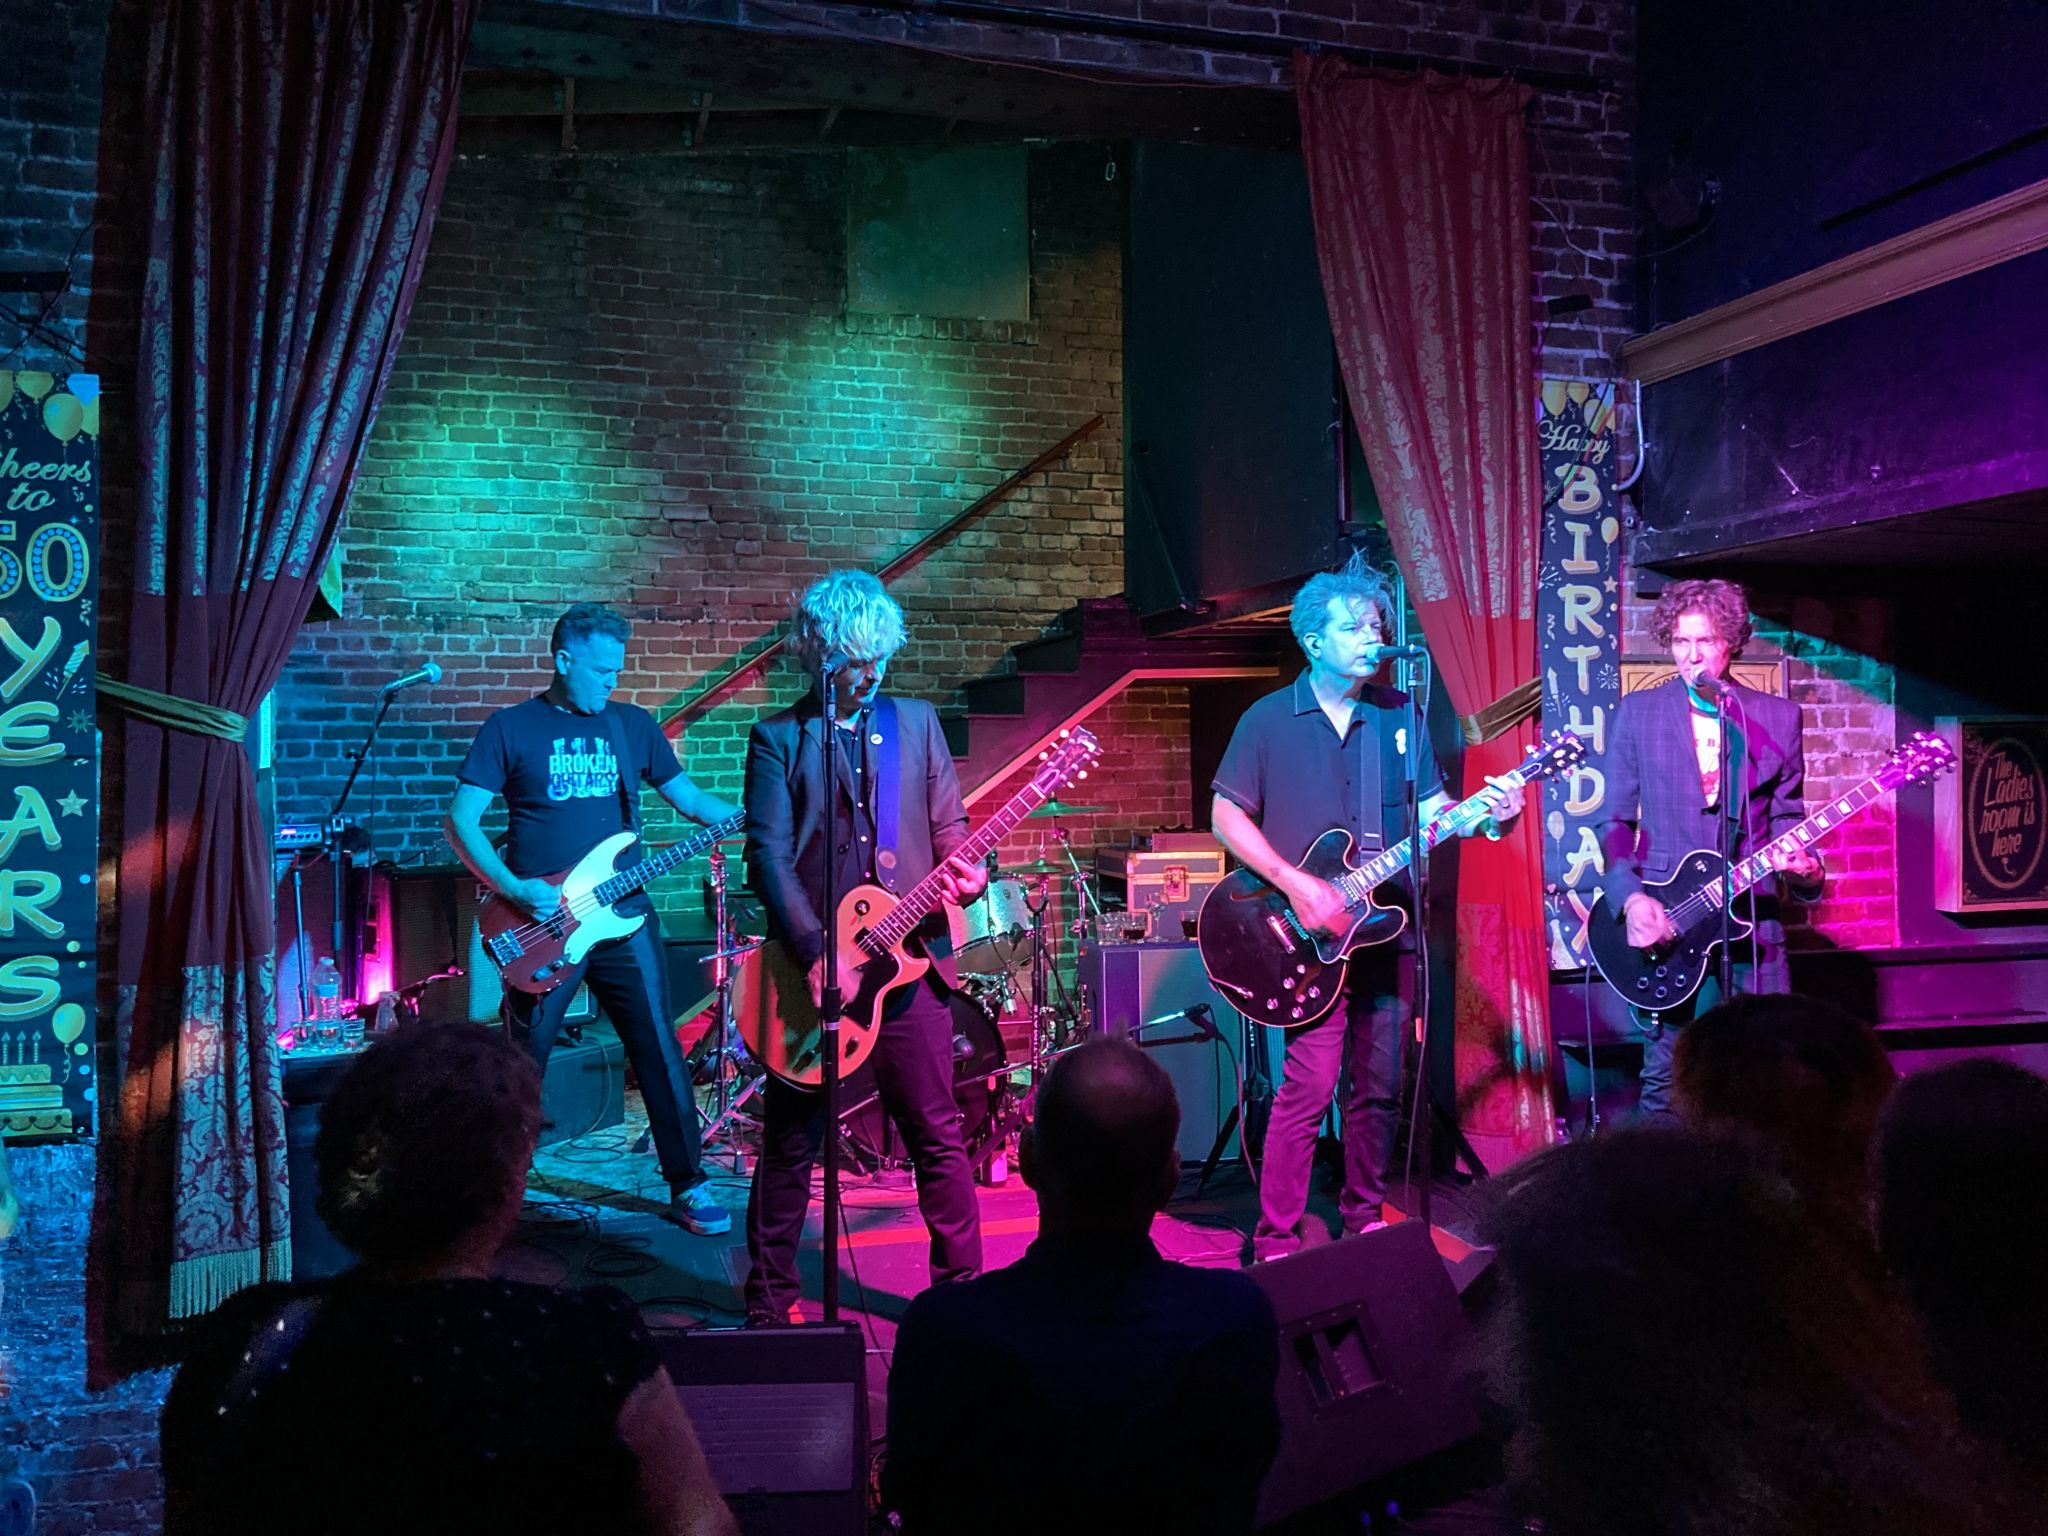 Members of Green Day play surprise gig at Oakland dive bar